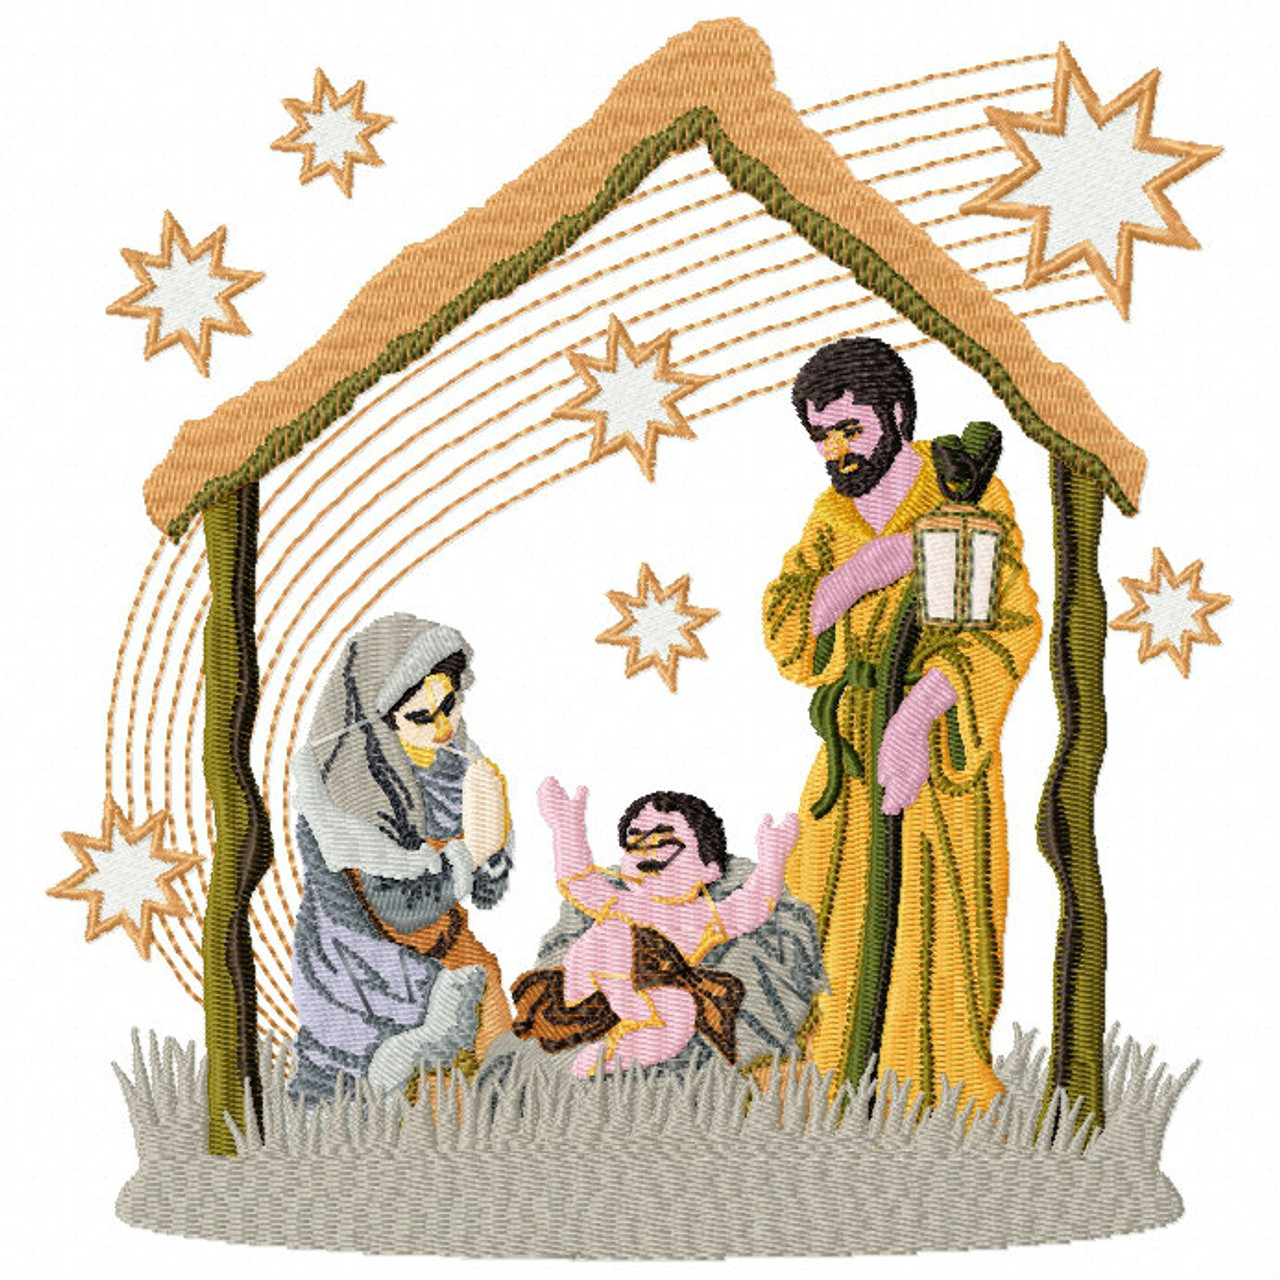 Religious Christmas Images.The Nativity Scene 2 Religious Christmas 08 Machine Embroidery Design